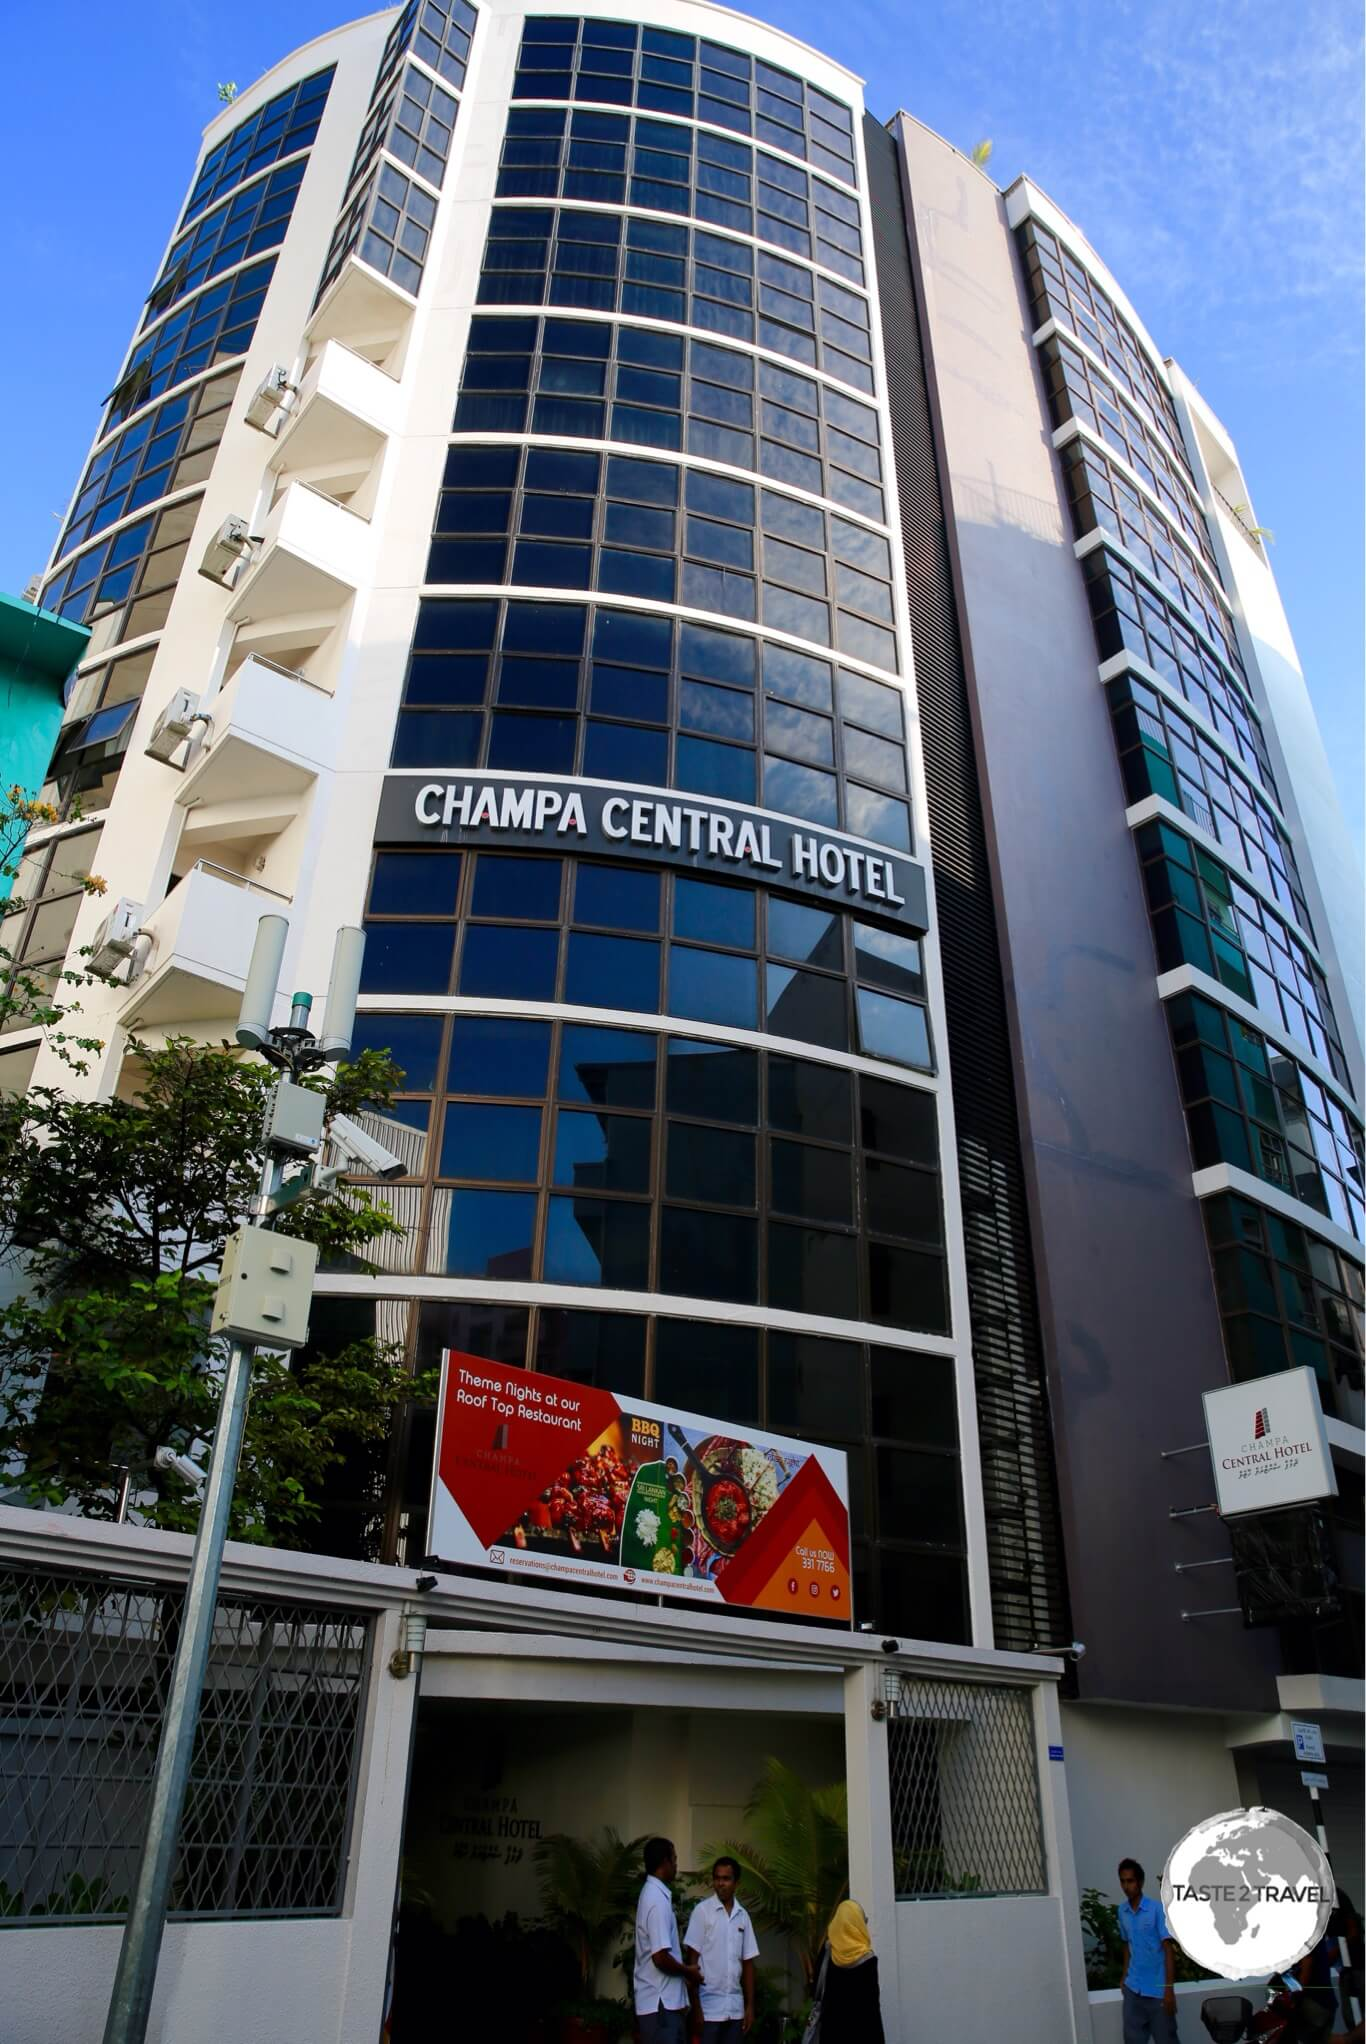 The very comfortable 4-star Champa Central hotel is located in the heart of Malé.